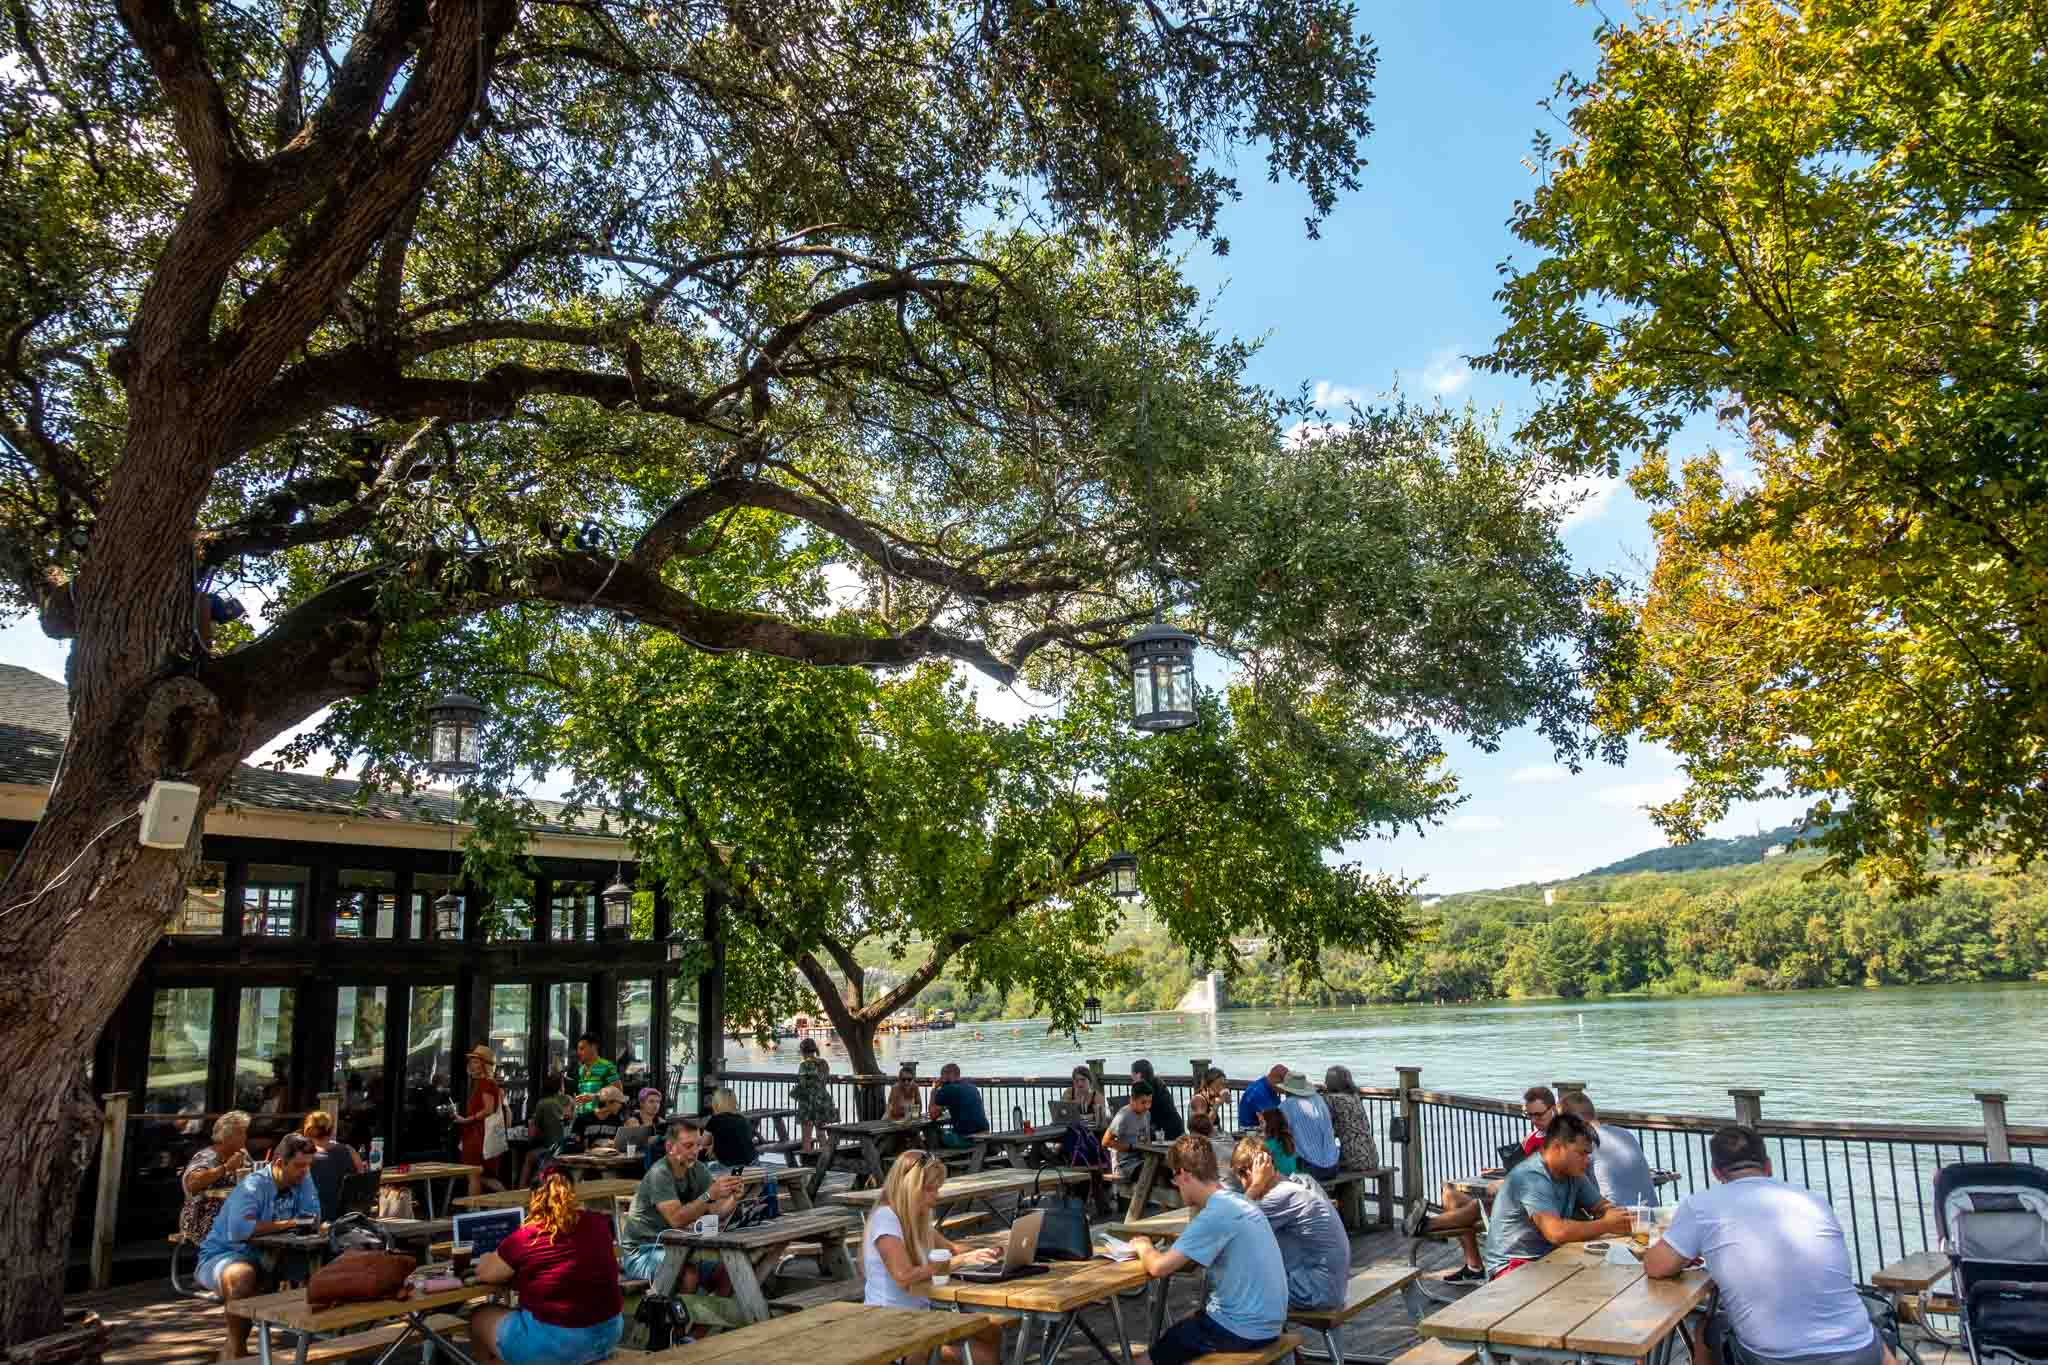 People sitting at picnic tables on a patio by a lake